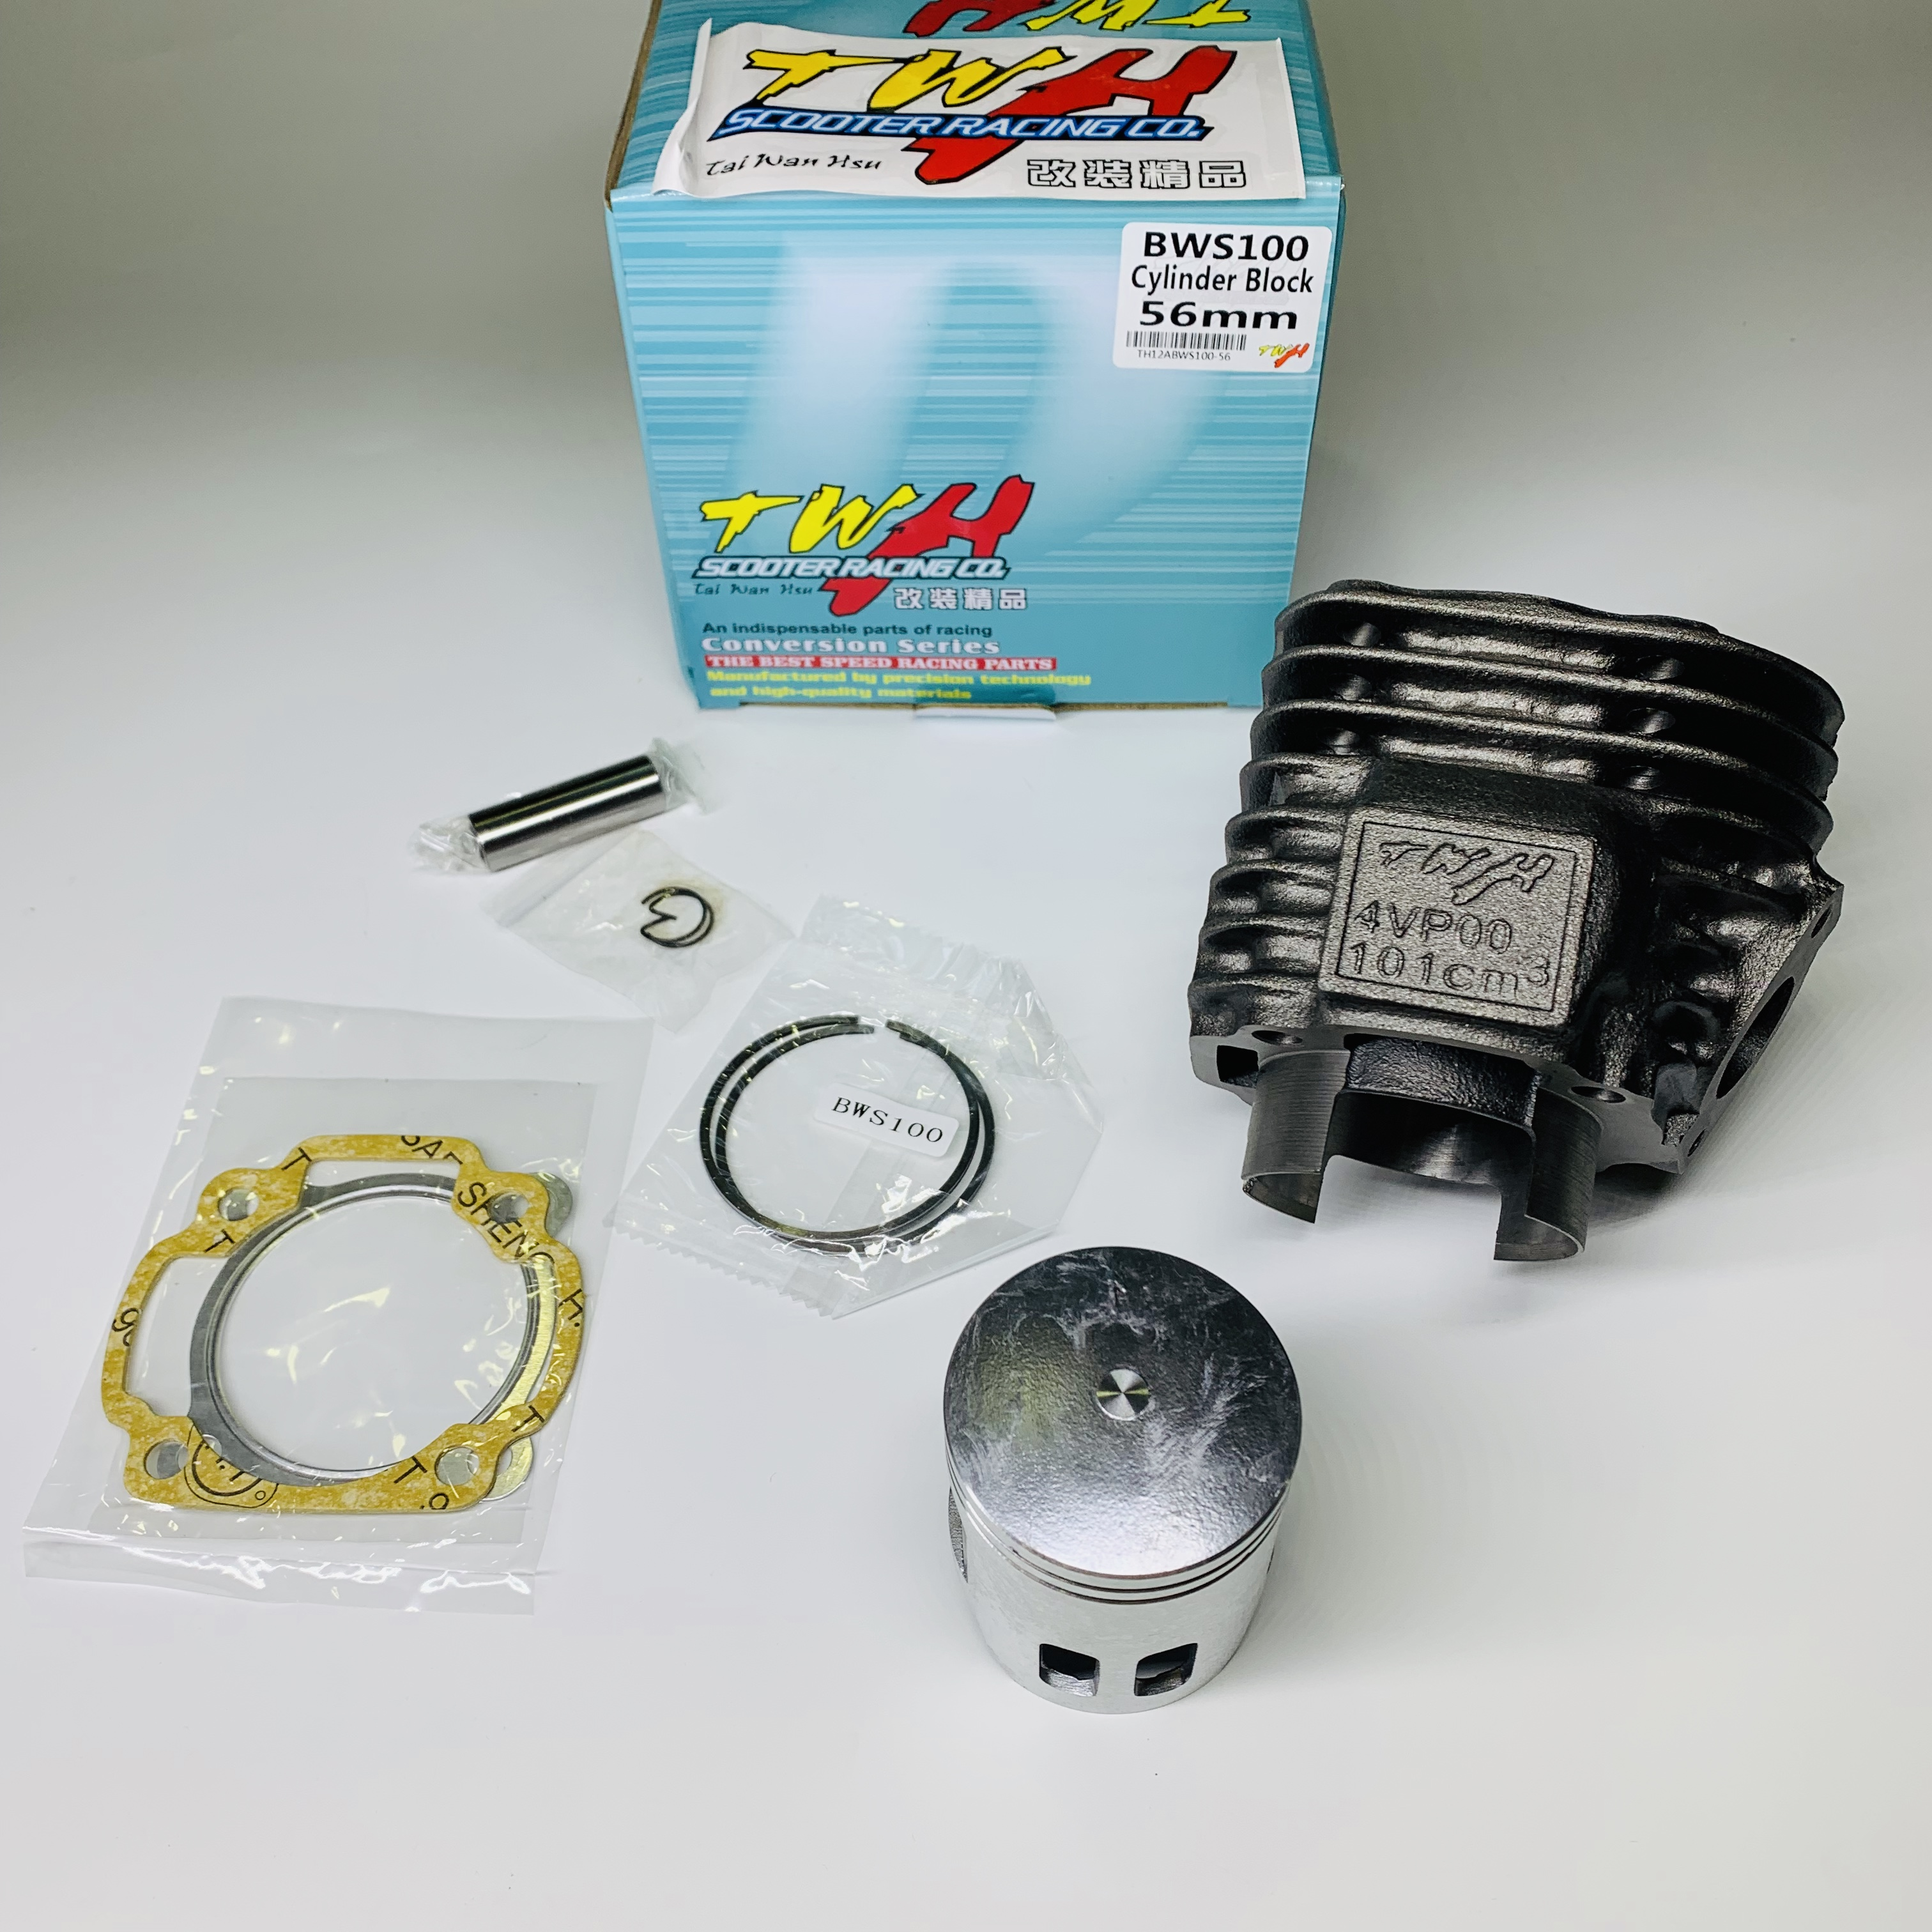 Big Bore, For, BWS100, Piston, 56mm, Rings, Gasket, 125cc, Tuning, Parts, 2 Stroke, Bws 100, Cylinder